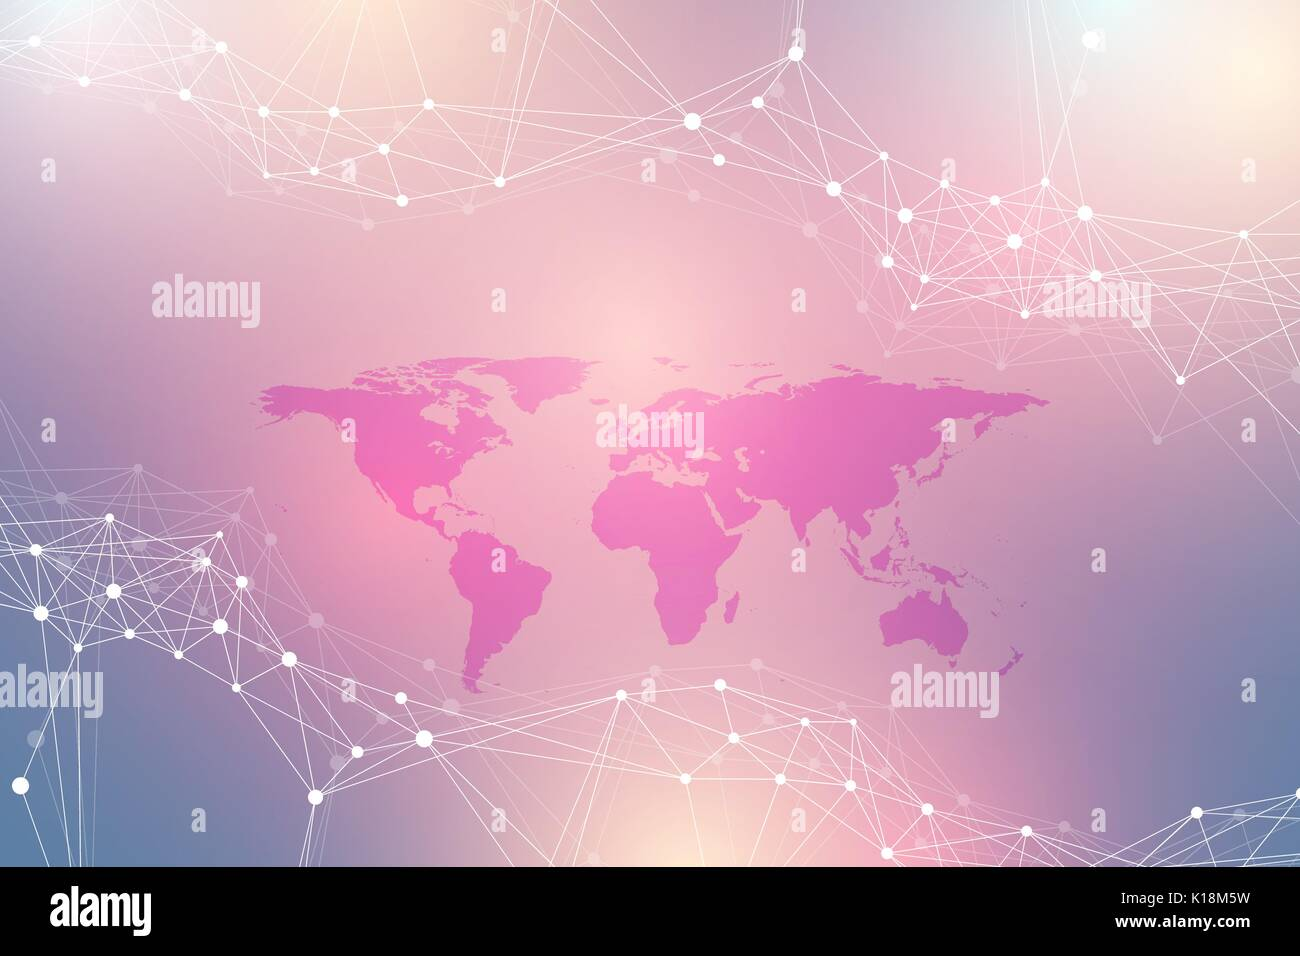 Political world map with global technology networking concept digital data visualization scientific cybernetic particle compounds big data background communication vector political world map gumiabroncs Gallery